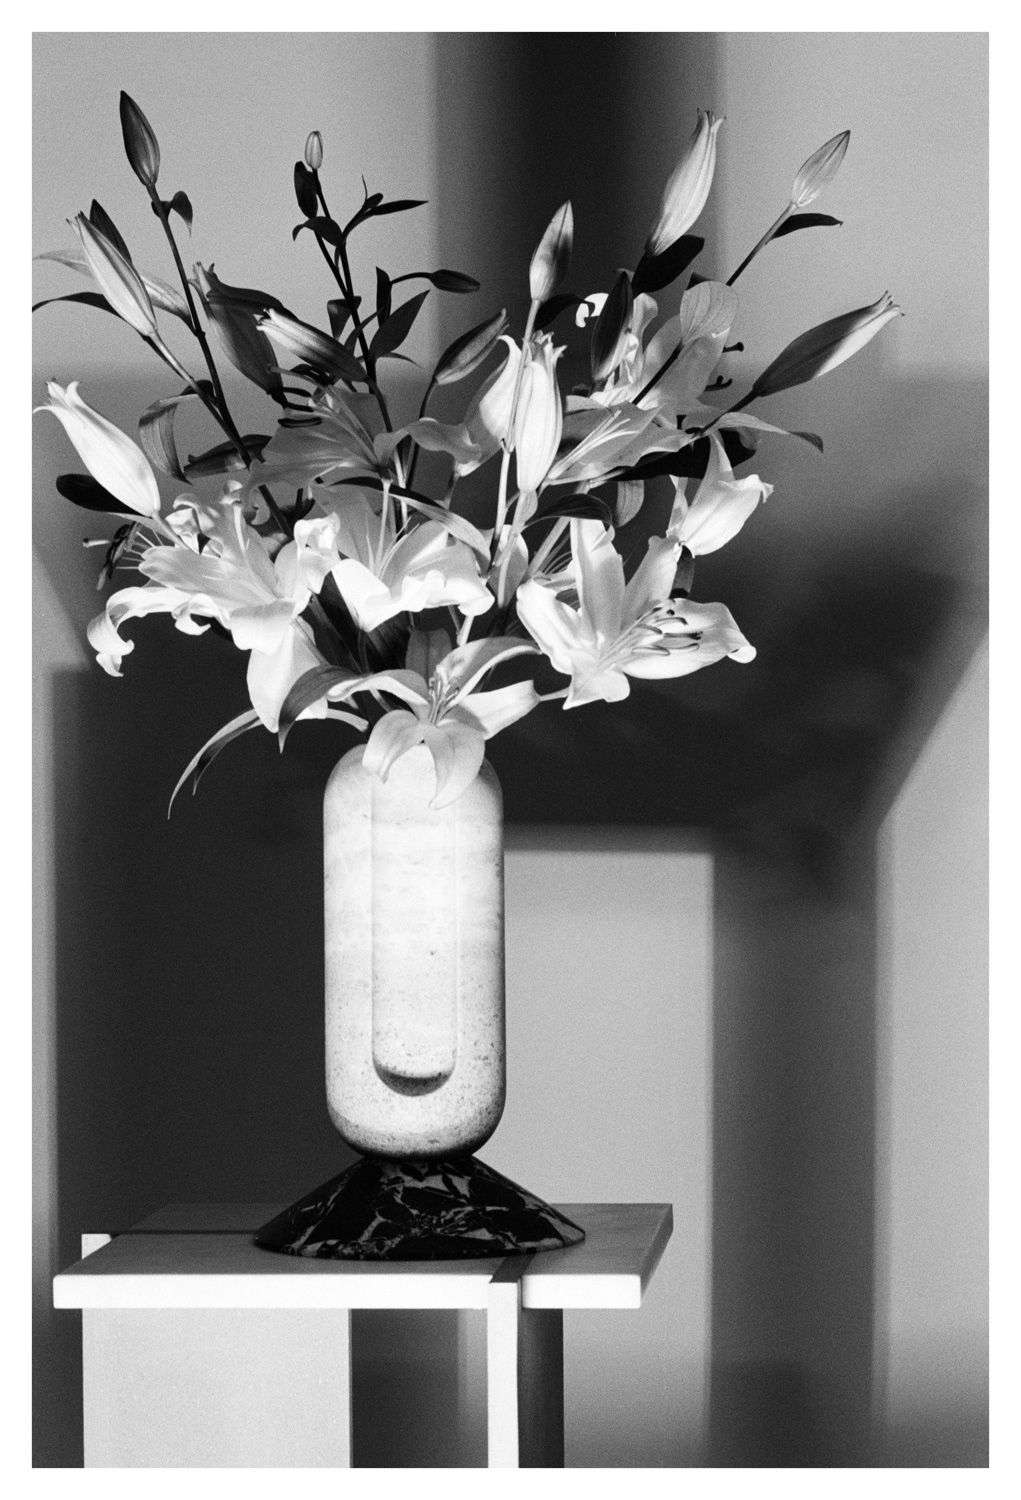 say hi to Valentina Cameranesi collectable object Avalon collection vase and set design Italy